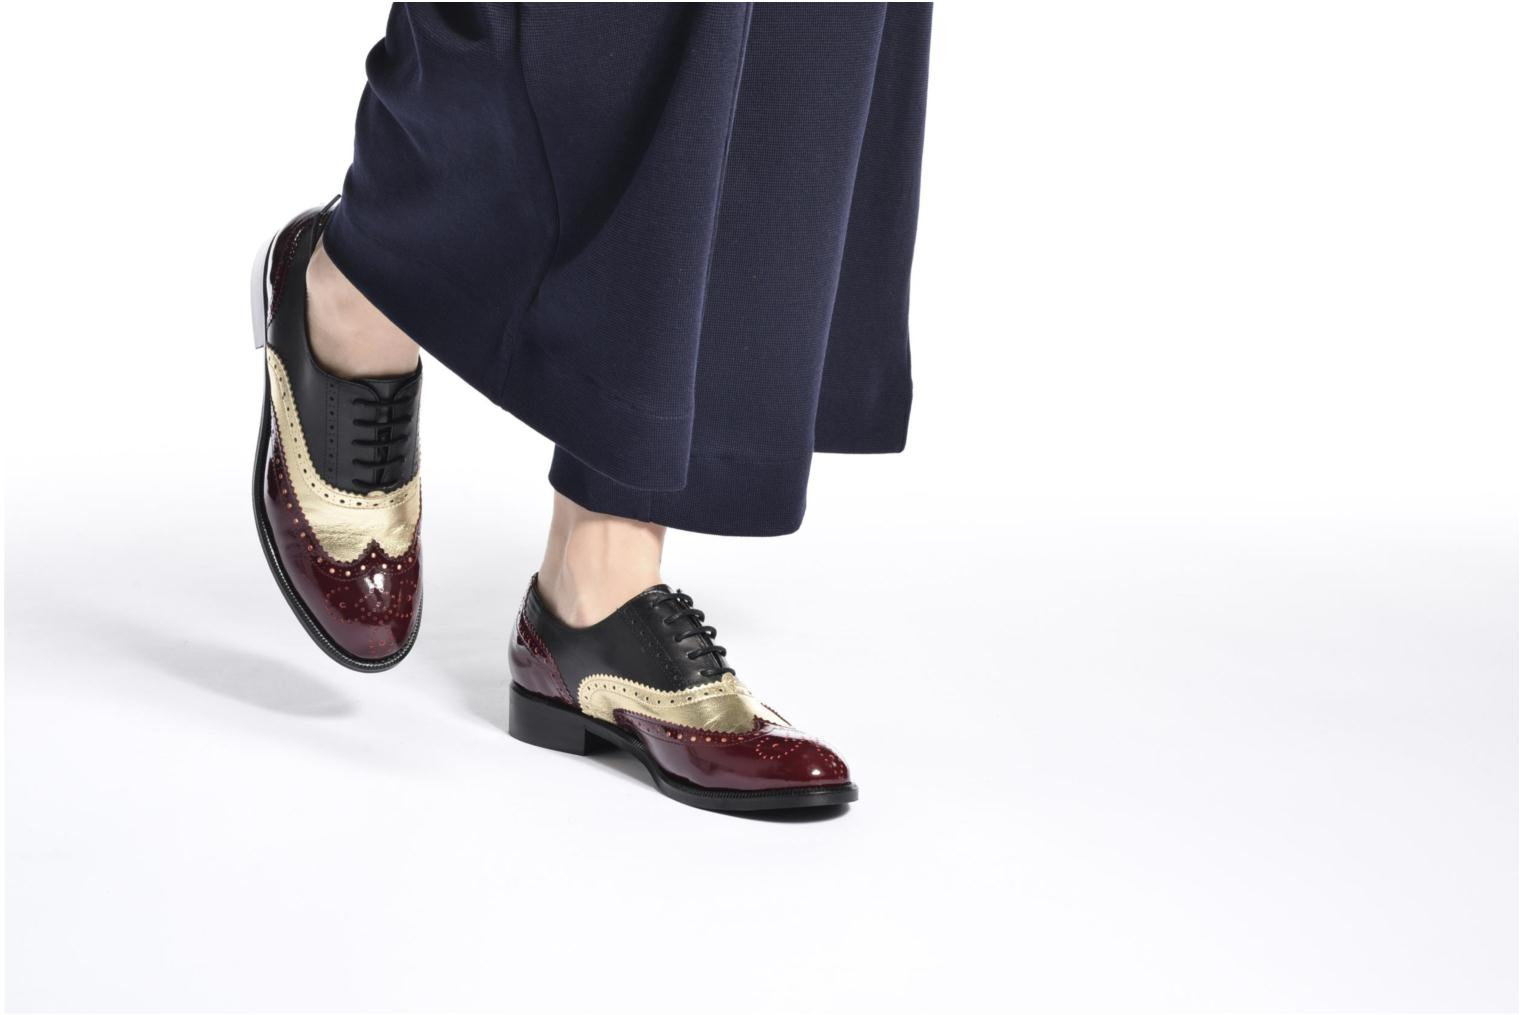 90's Girls Gang Chaussures à Lacets #5 Cuir Multico + Print Militaire